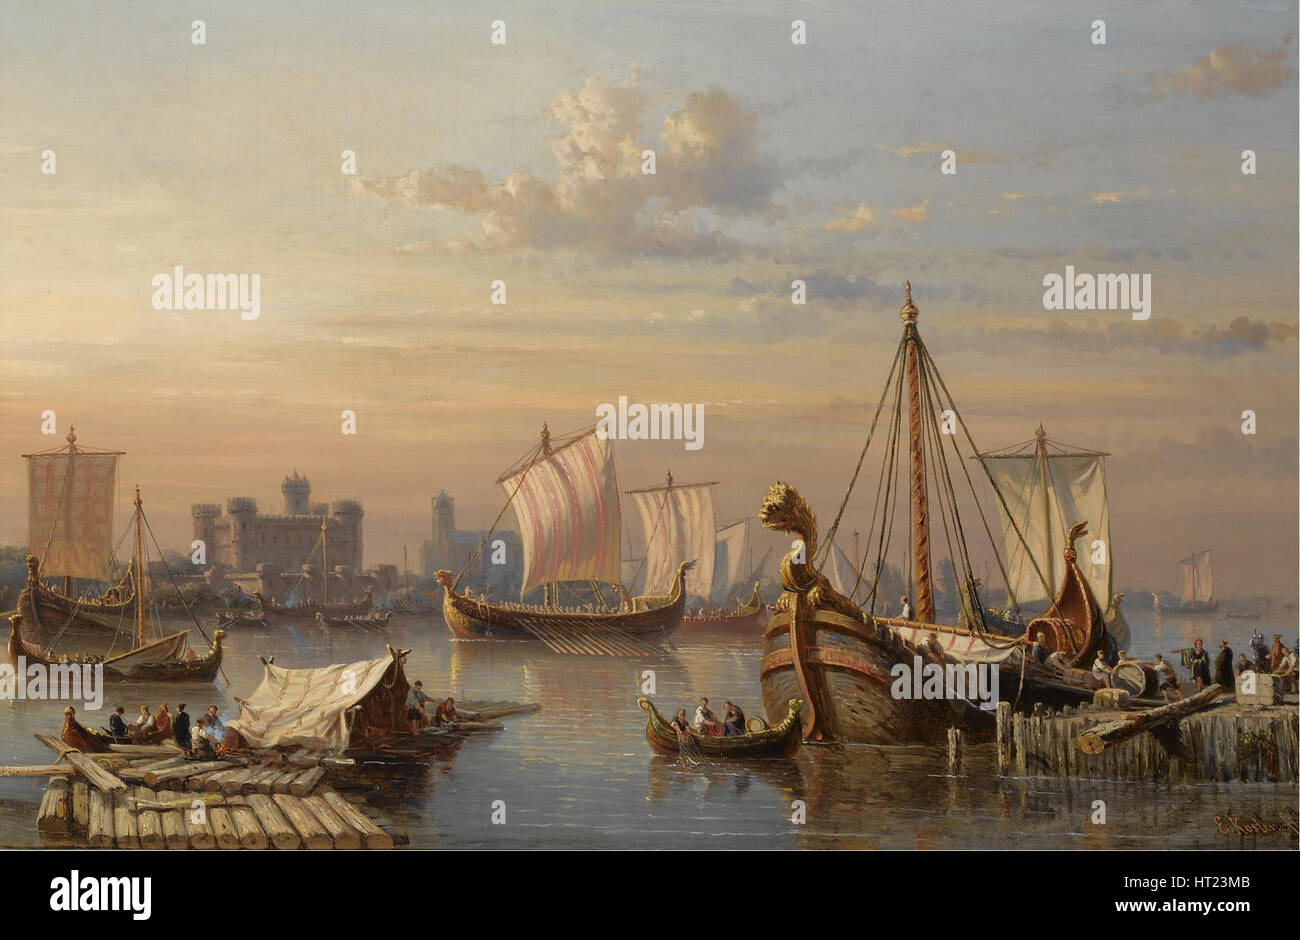 Viking ships on the River Thames, Mid of the 19th century. Artist: Koster, Everhardus (1817-1892) - Stock Image